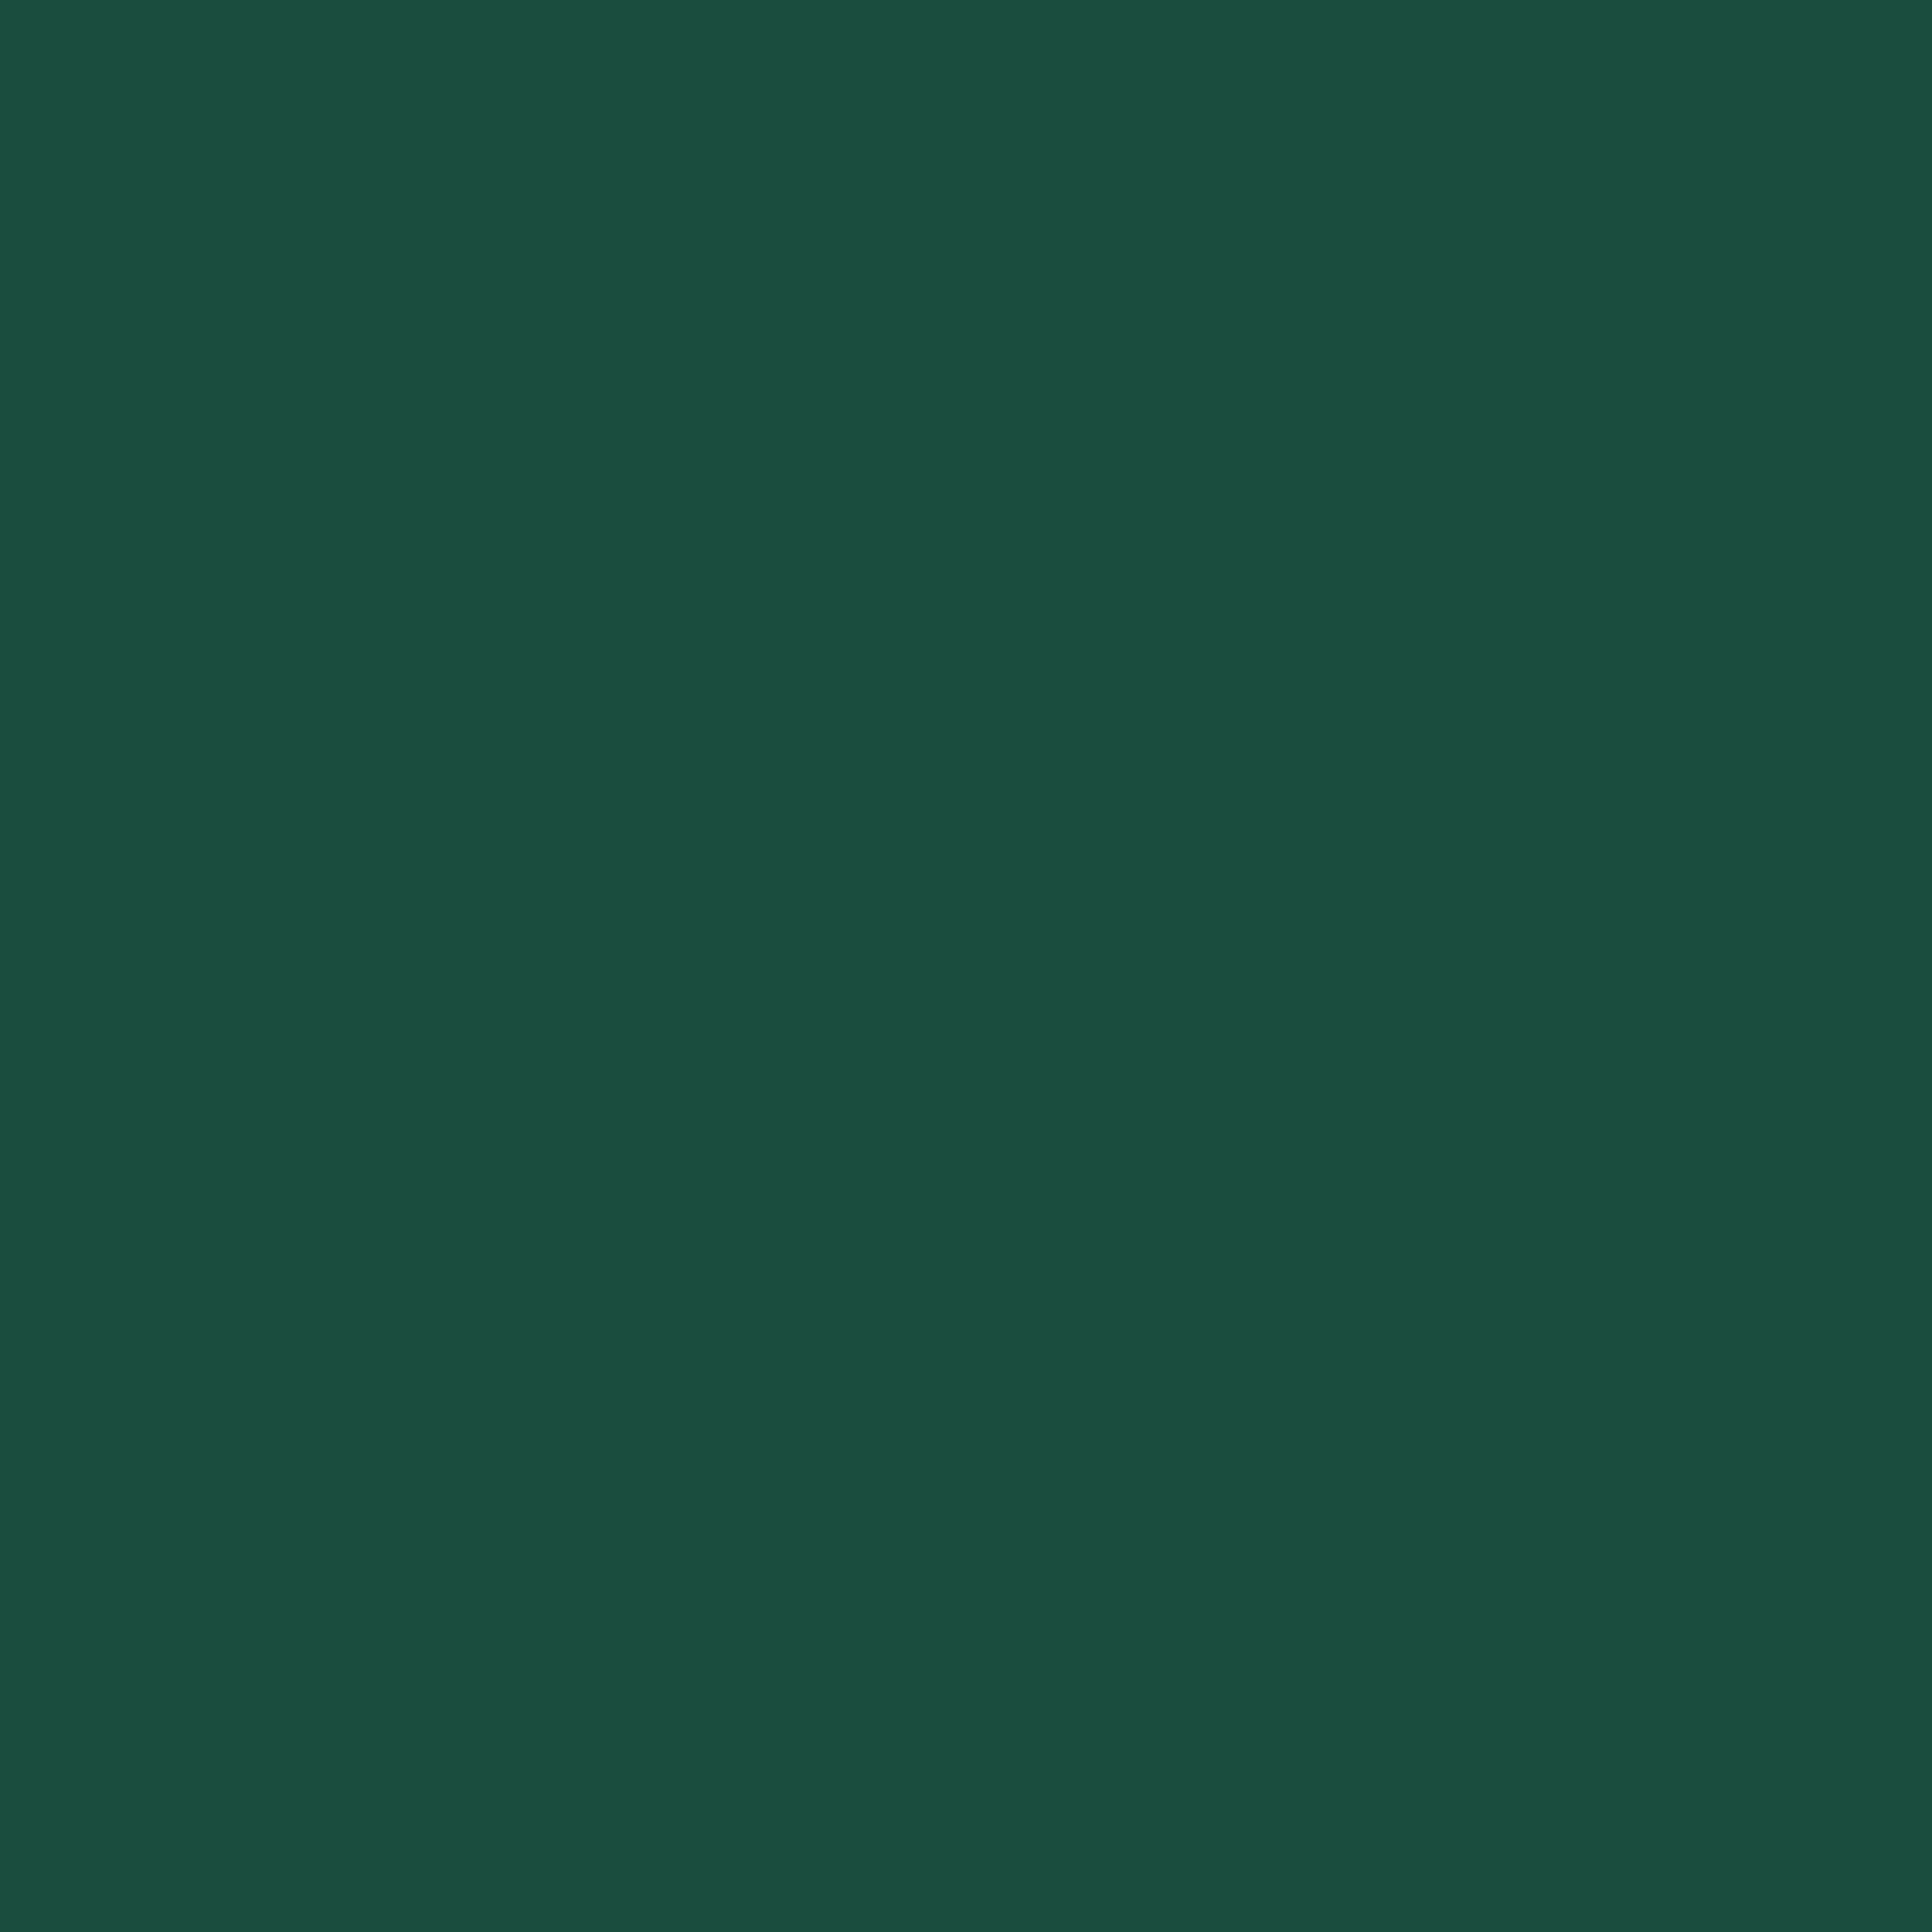 3600x3600 Brunswick Green Solid Color Background